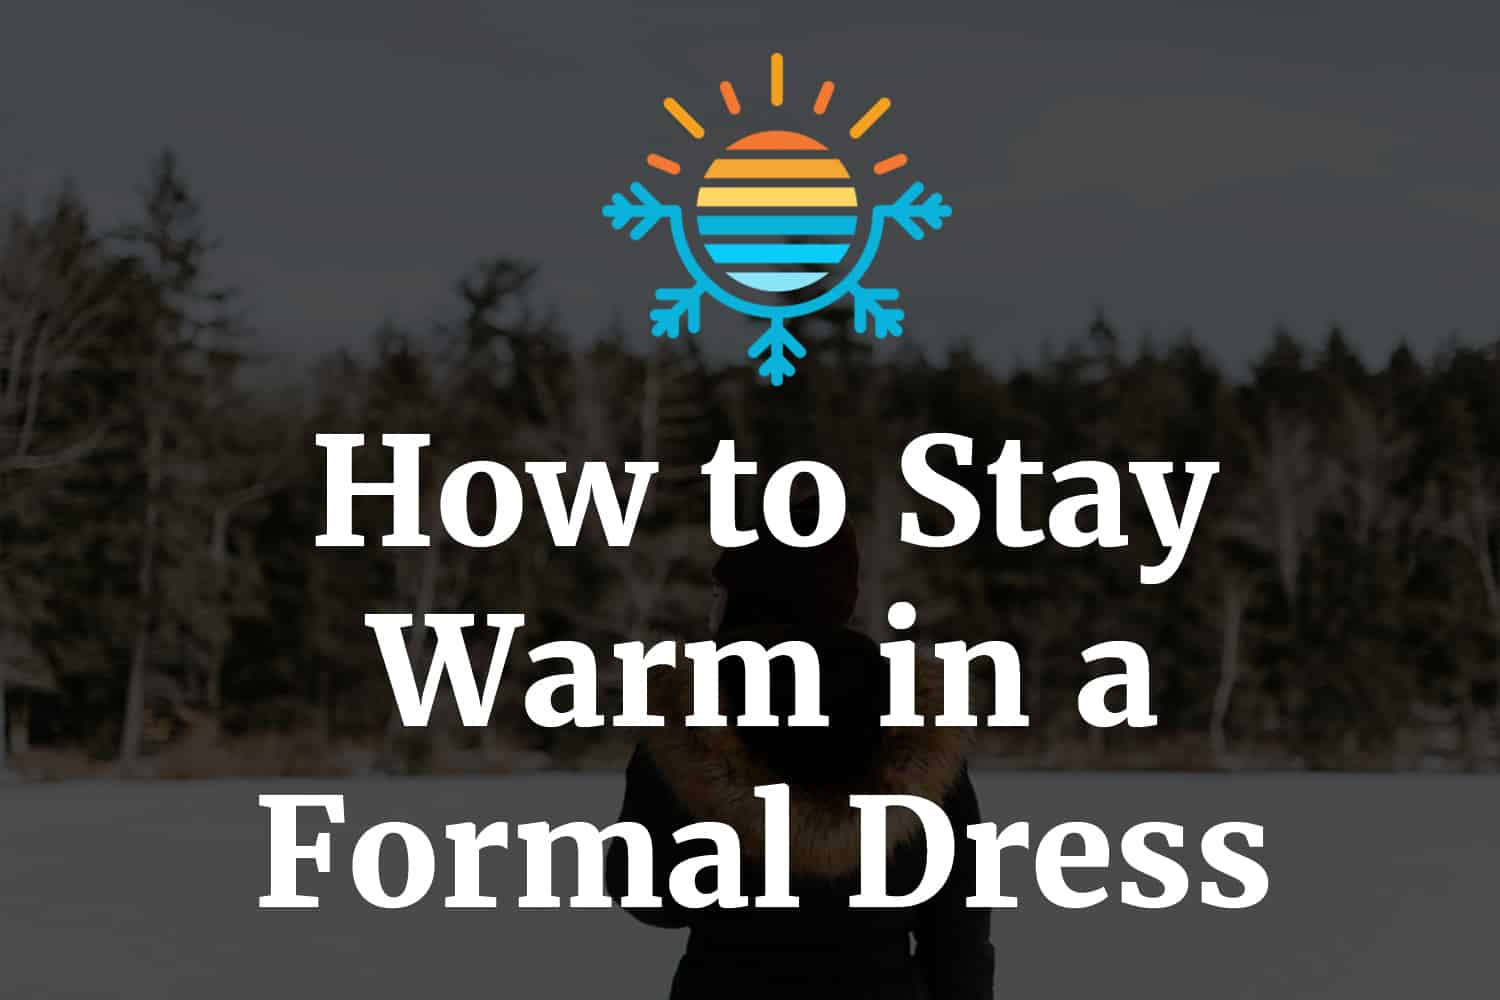 How to Stay Warm in a Formal Dress